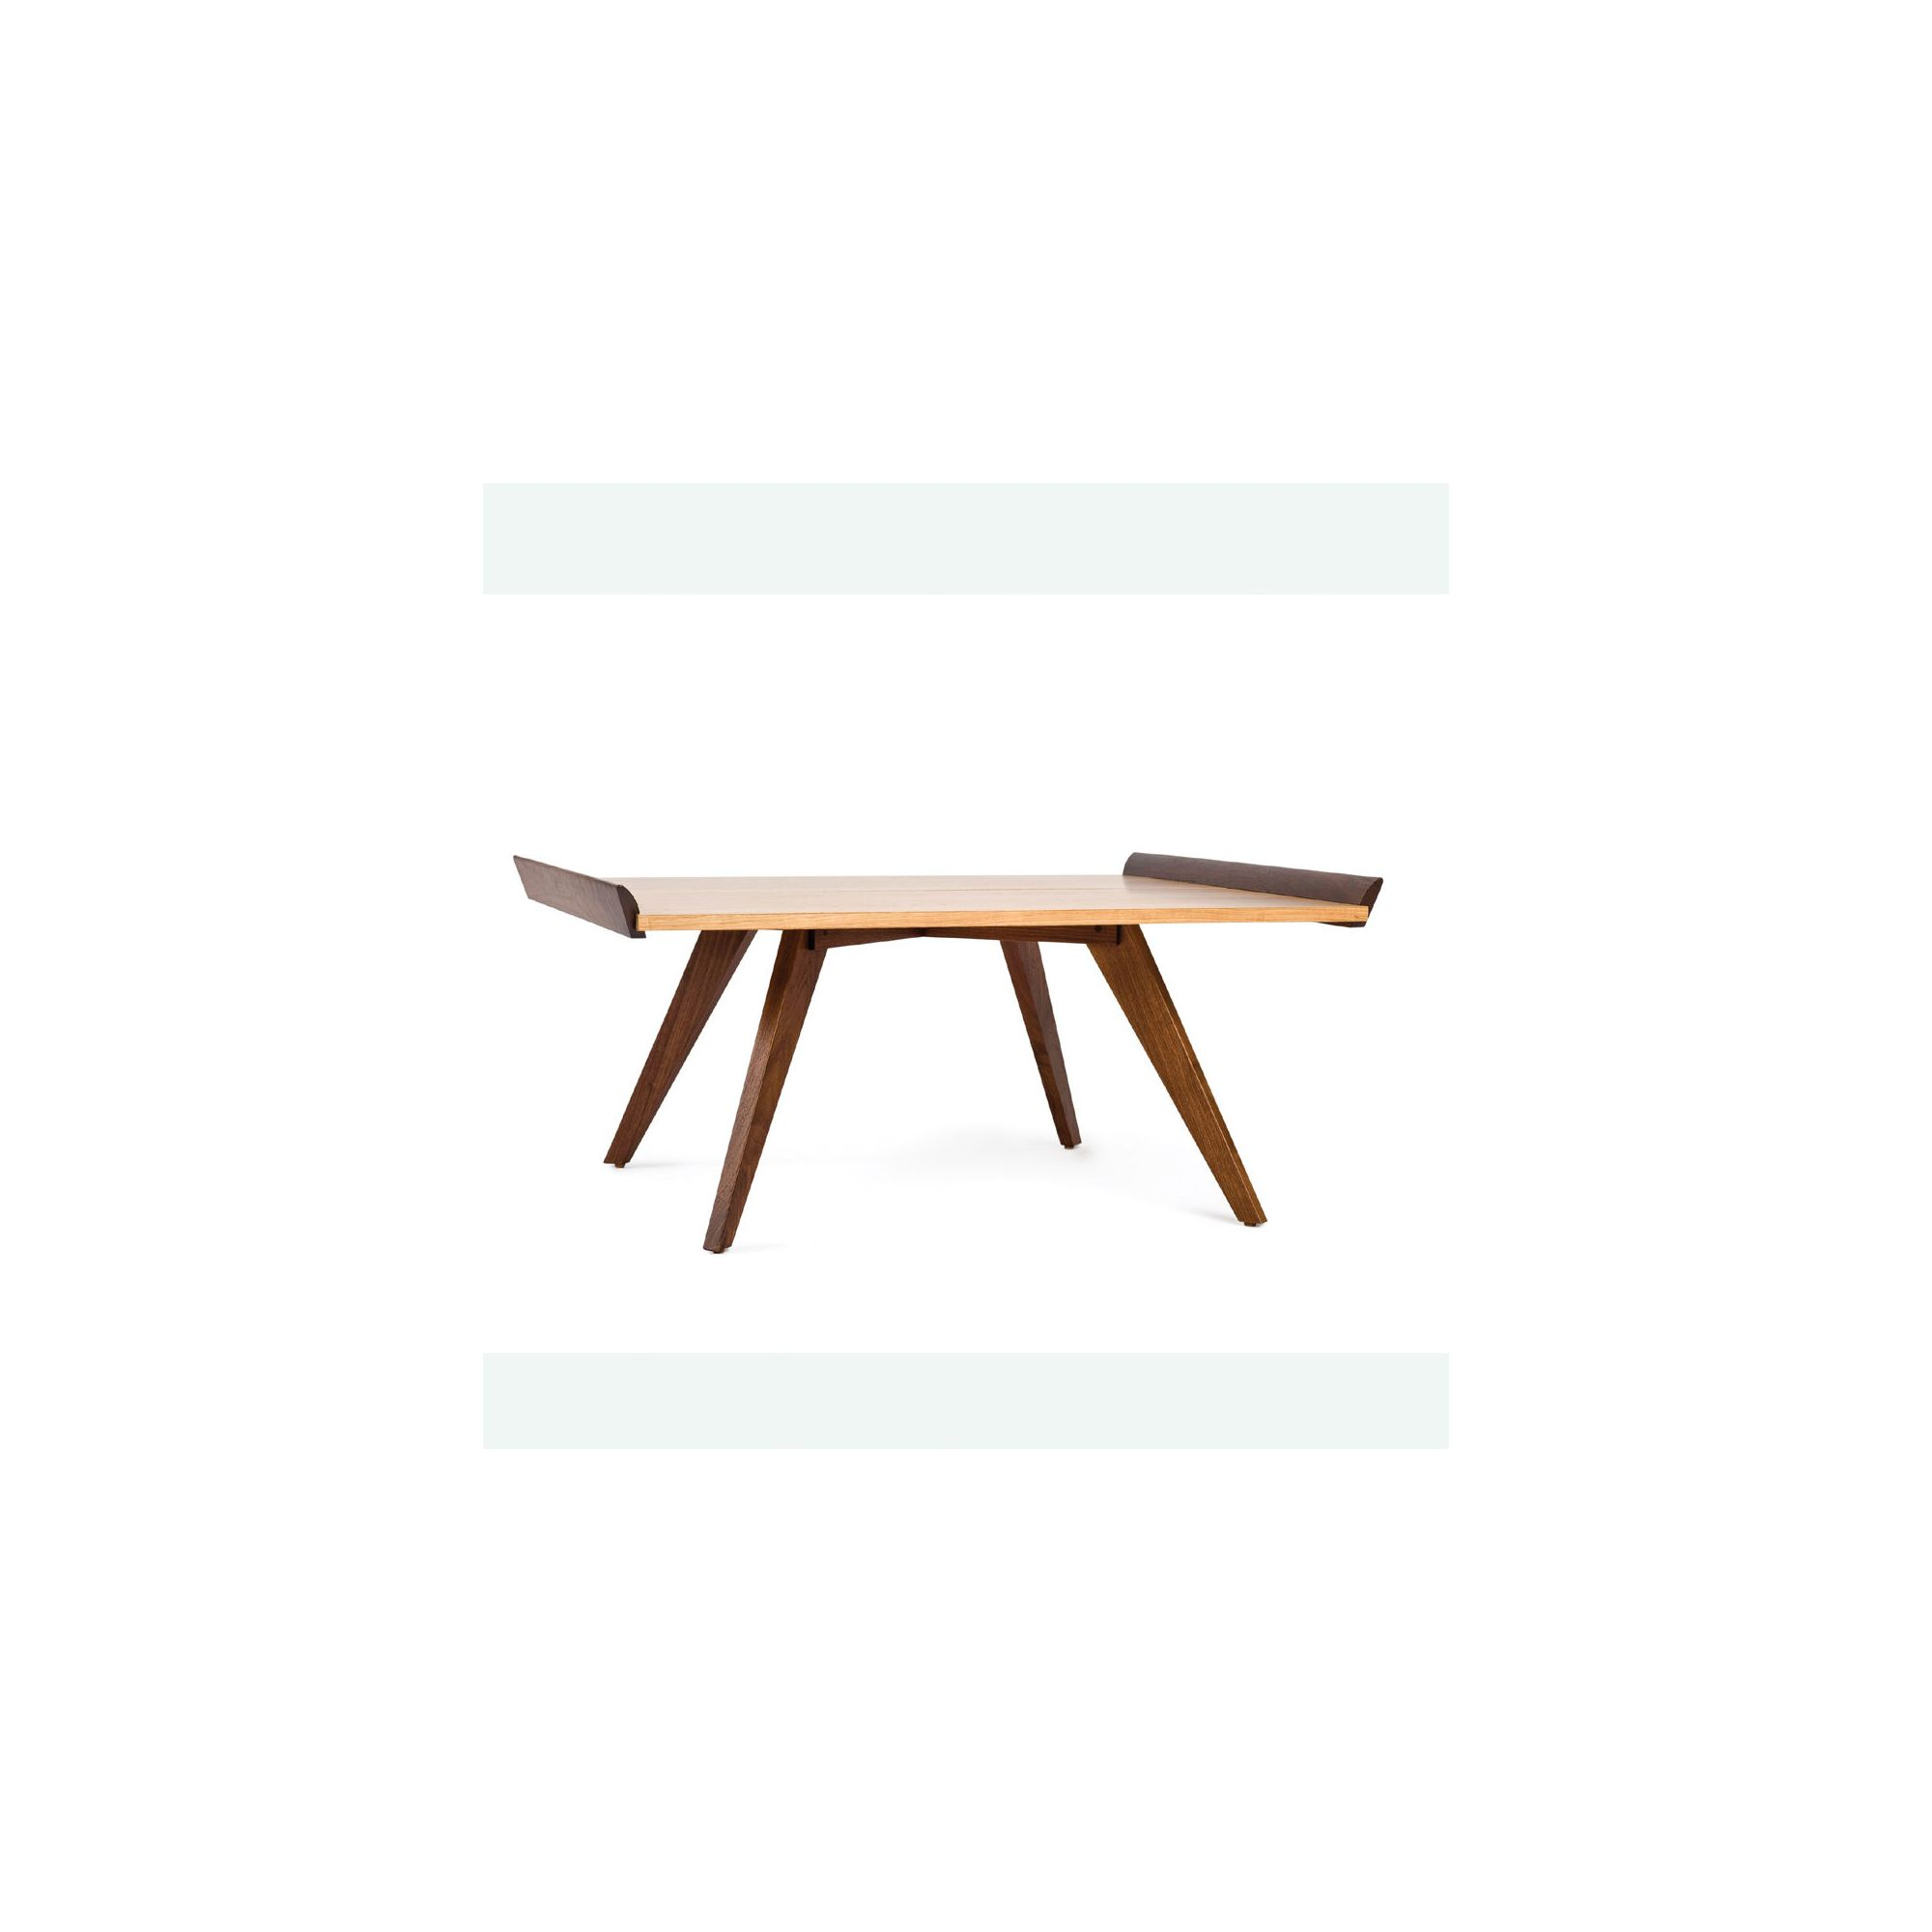 Knoll Splay Table by Nakashima - Quick Shipping! at Tesco Direct